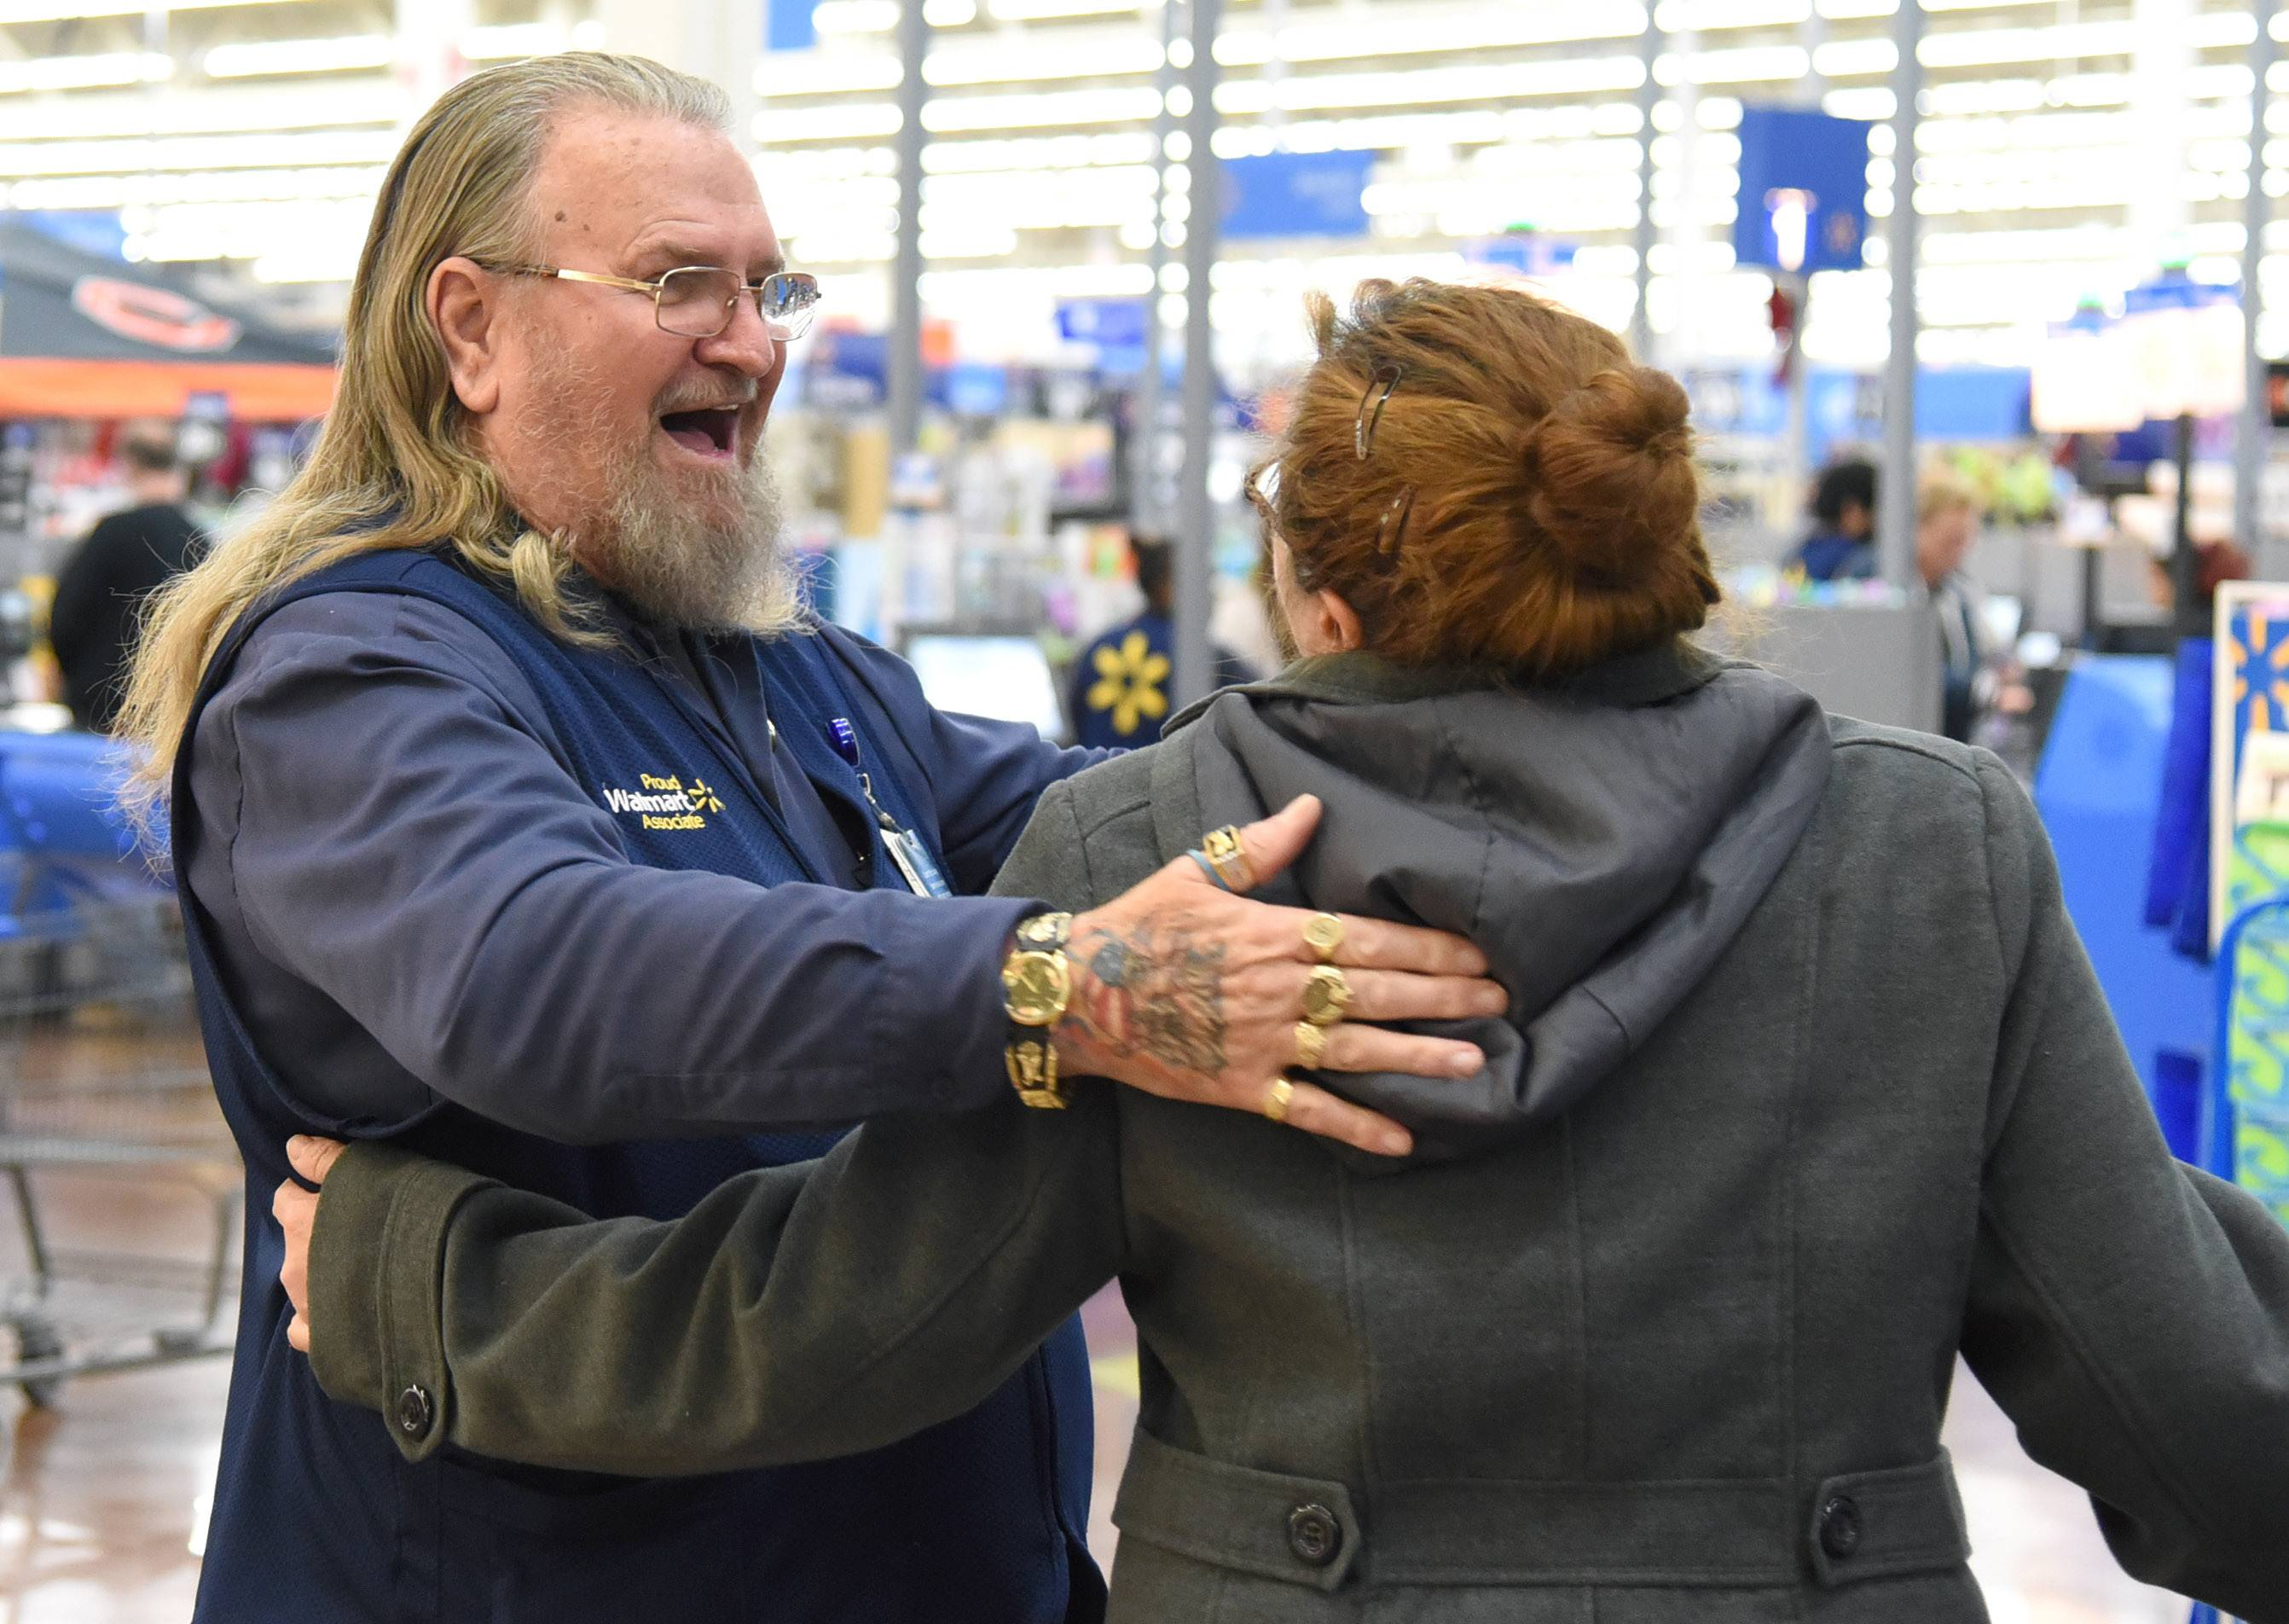 Meet the tattoo-covered greeter who charms Wal-Mart shoppers